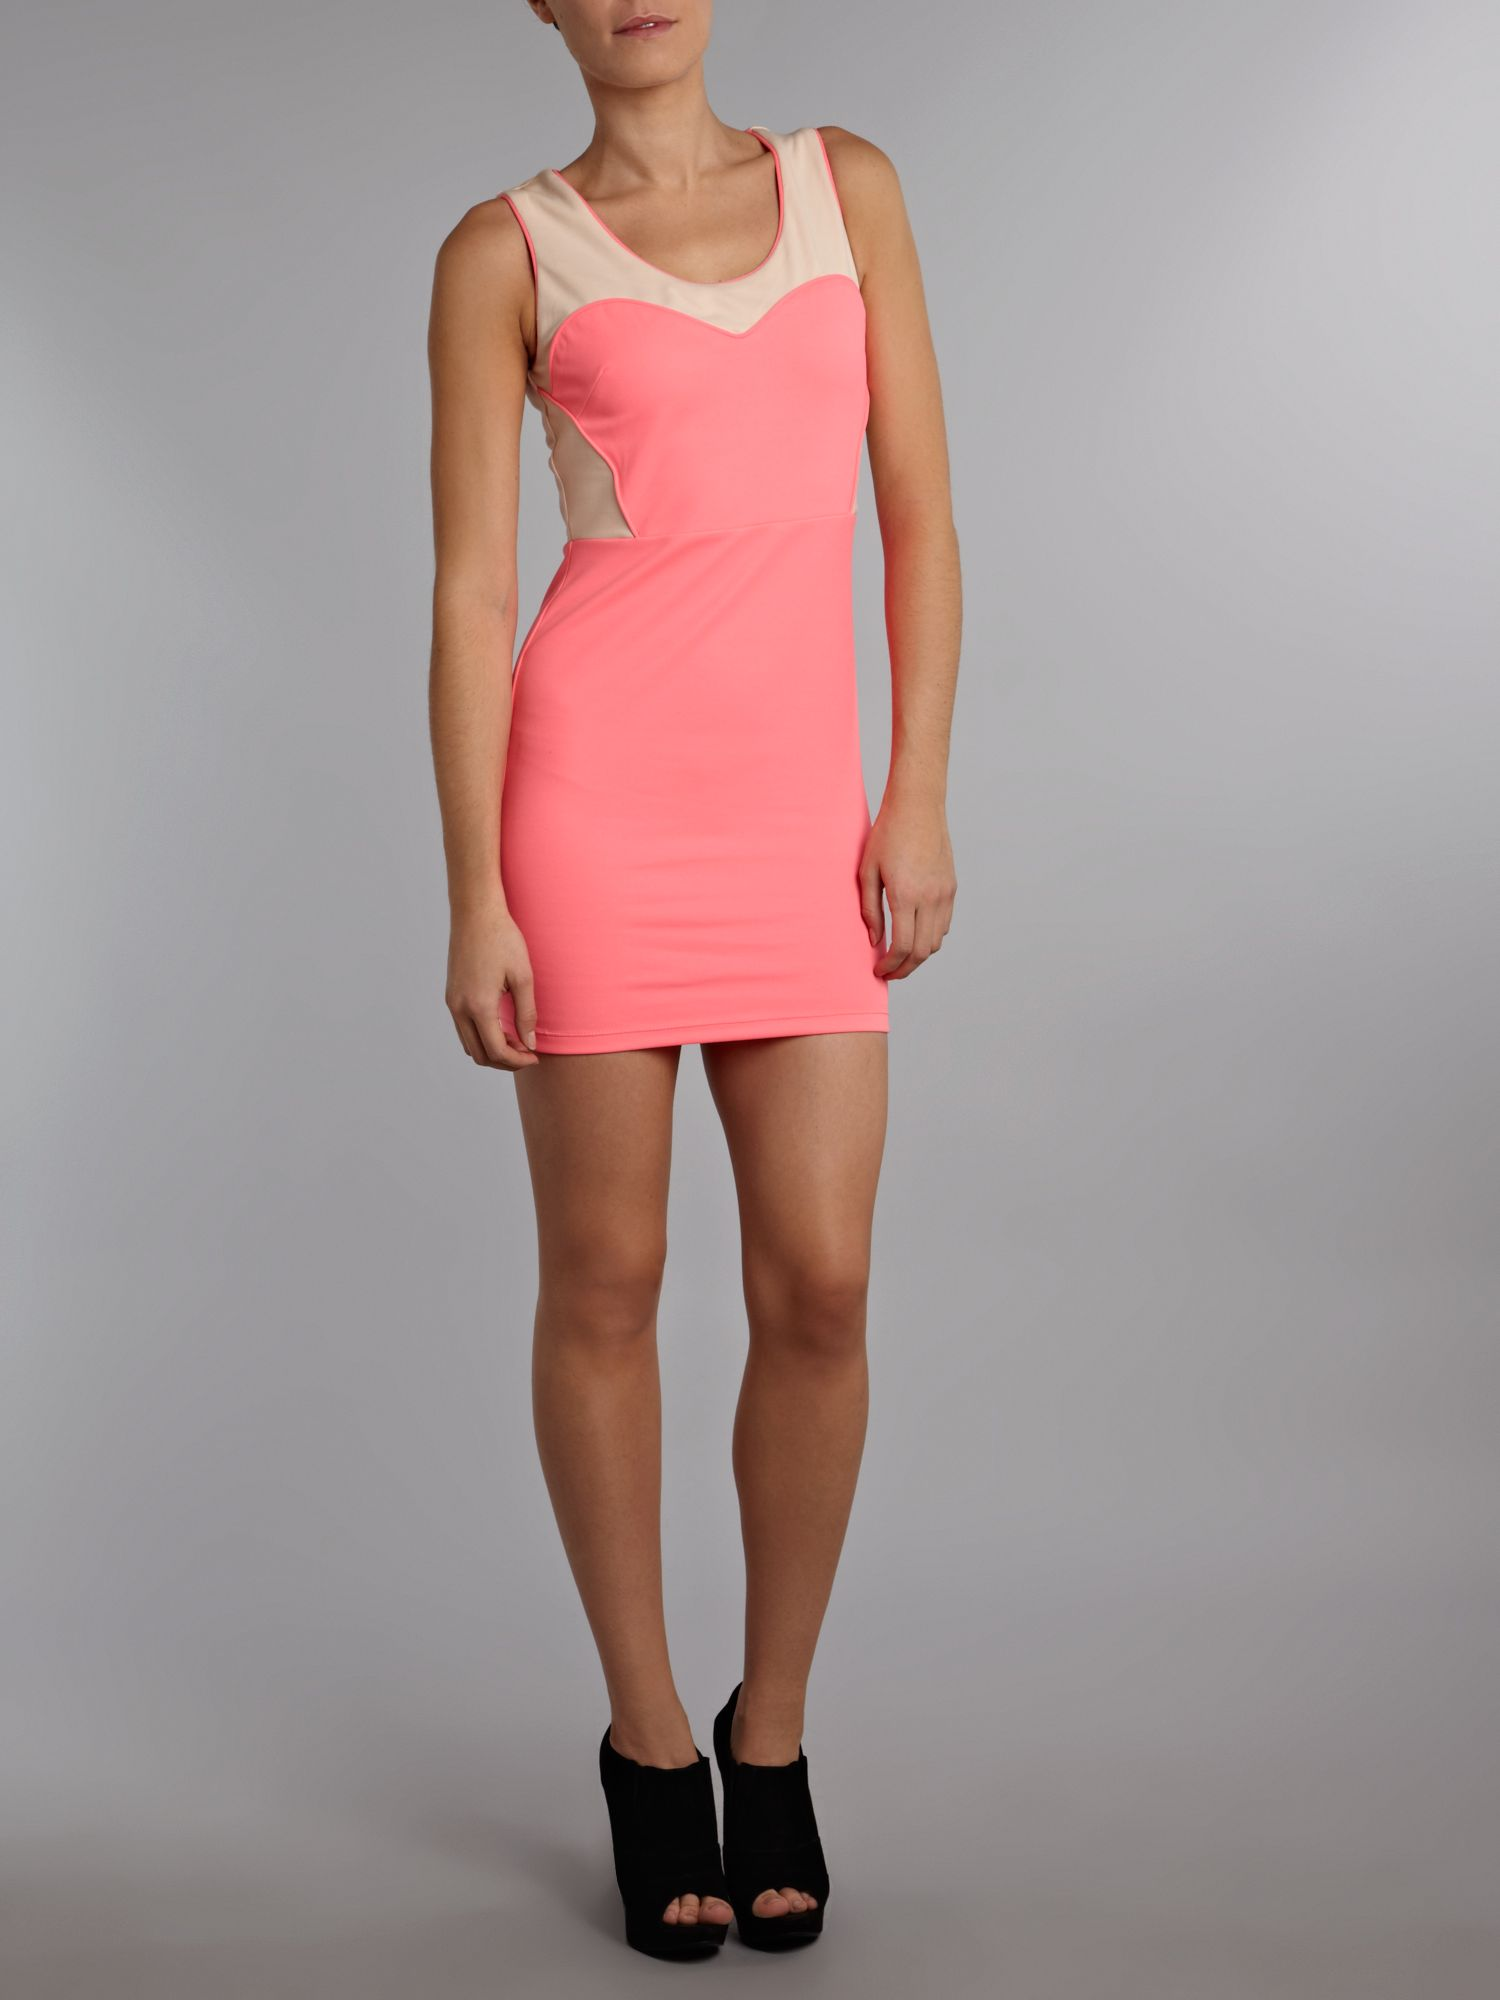 Sleeveless neon pink dress